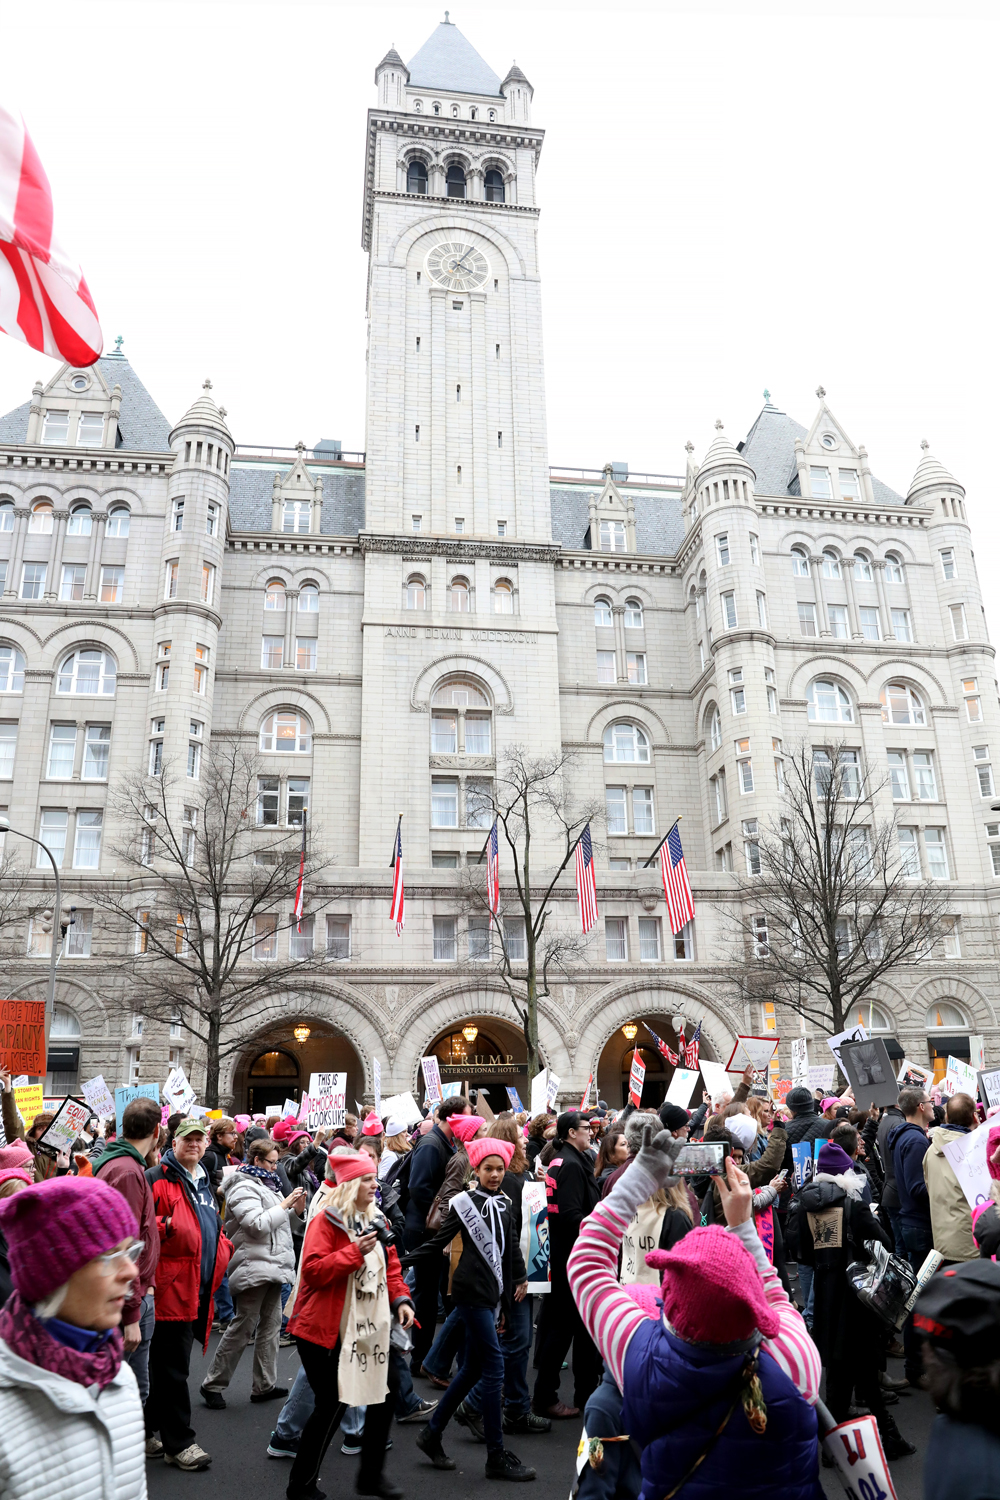 Trump International Hotel |  The Women's March | Washington, DC | January 21, 2017